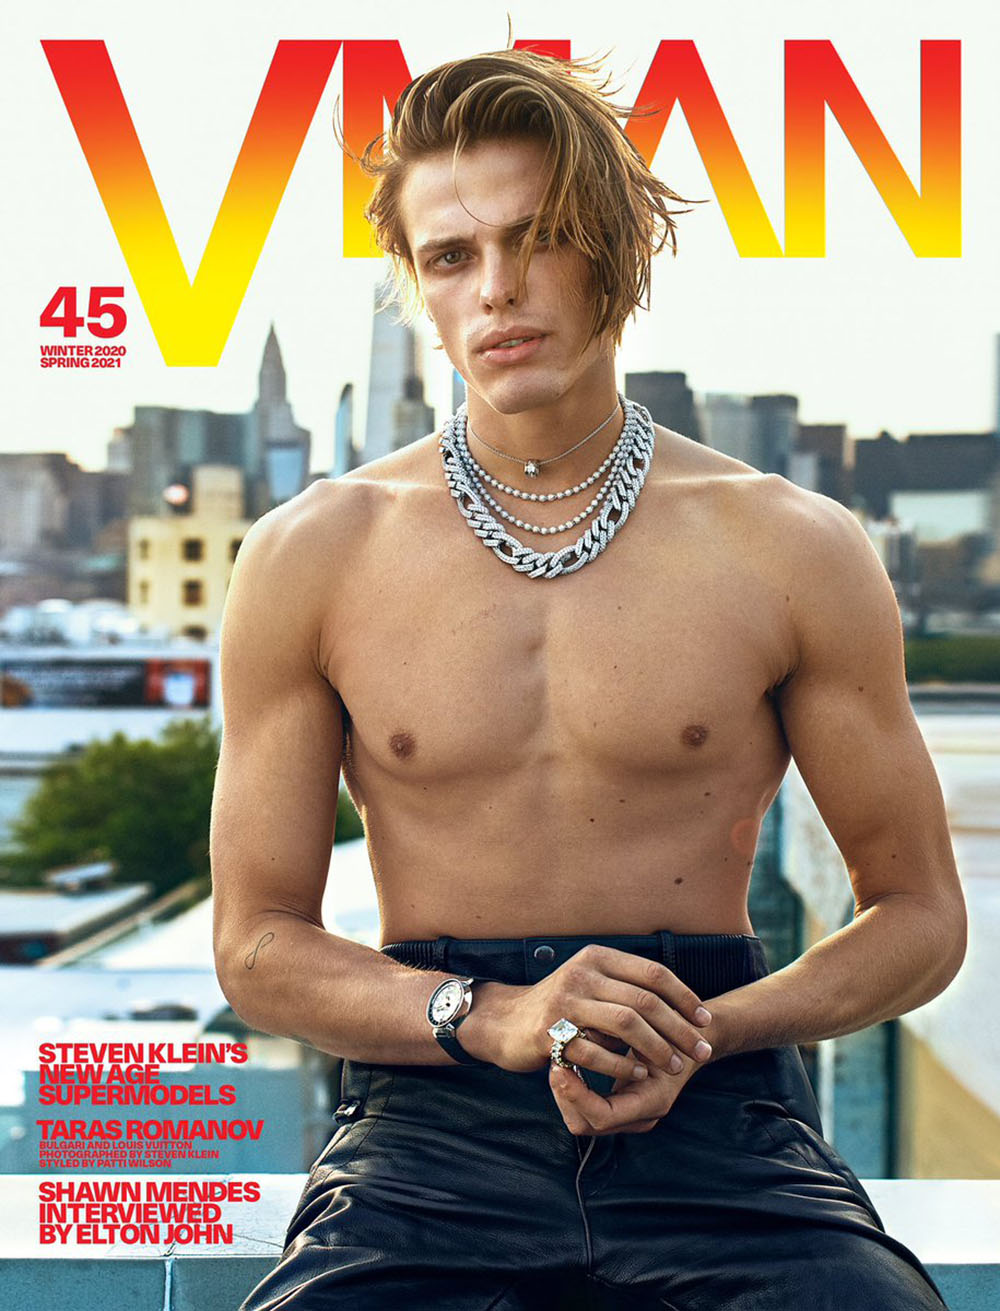 Taras Romanov covers VMan Winter 2020 Spring 2021 by Steven Klein